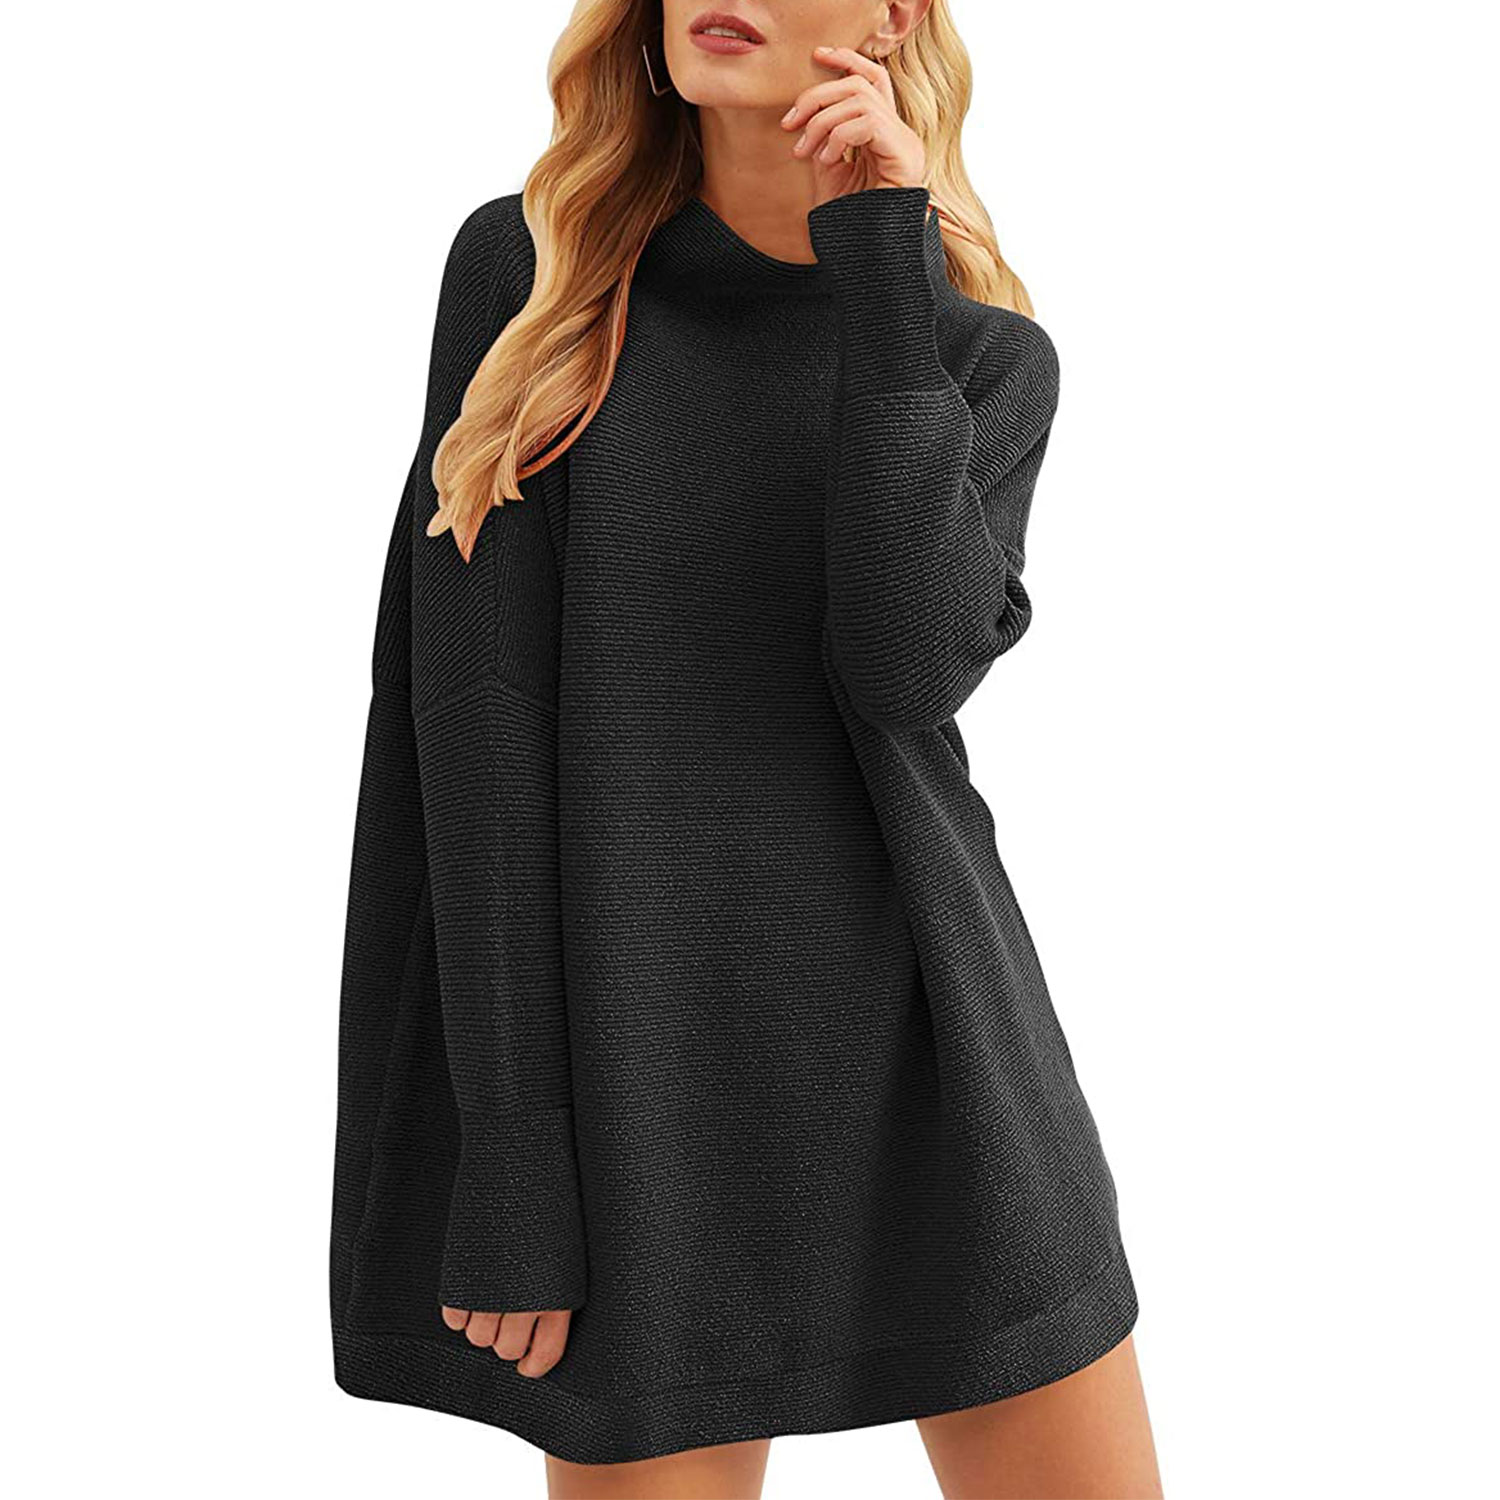 women's casual turtleneck batwing sleeve slouchy oversized ribbed knit tunic sweaters, black